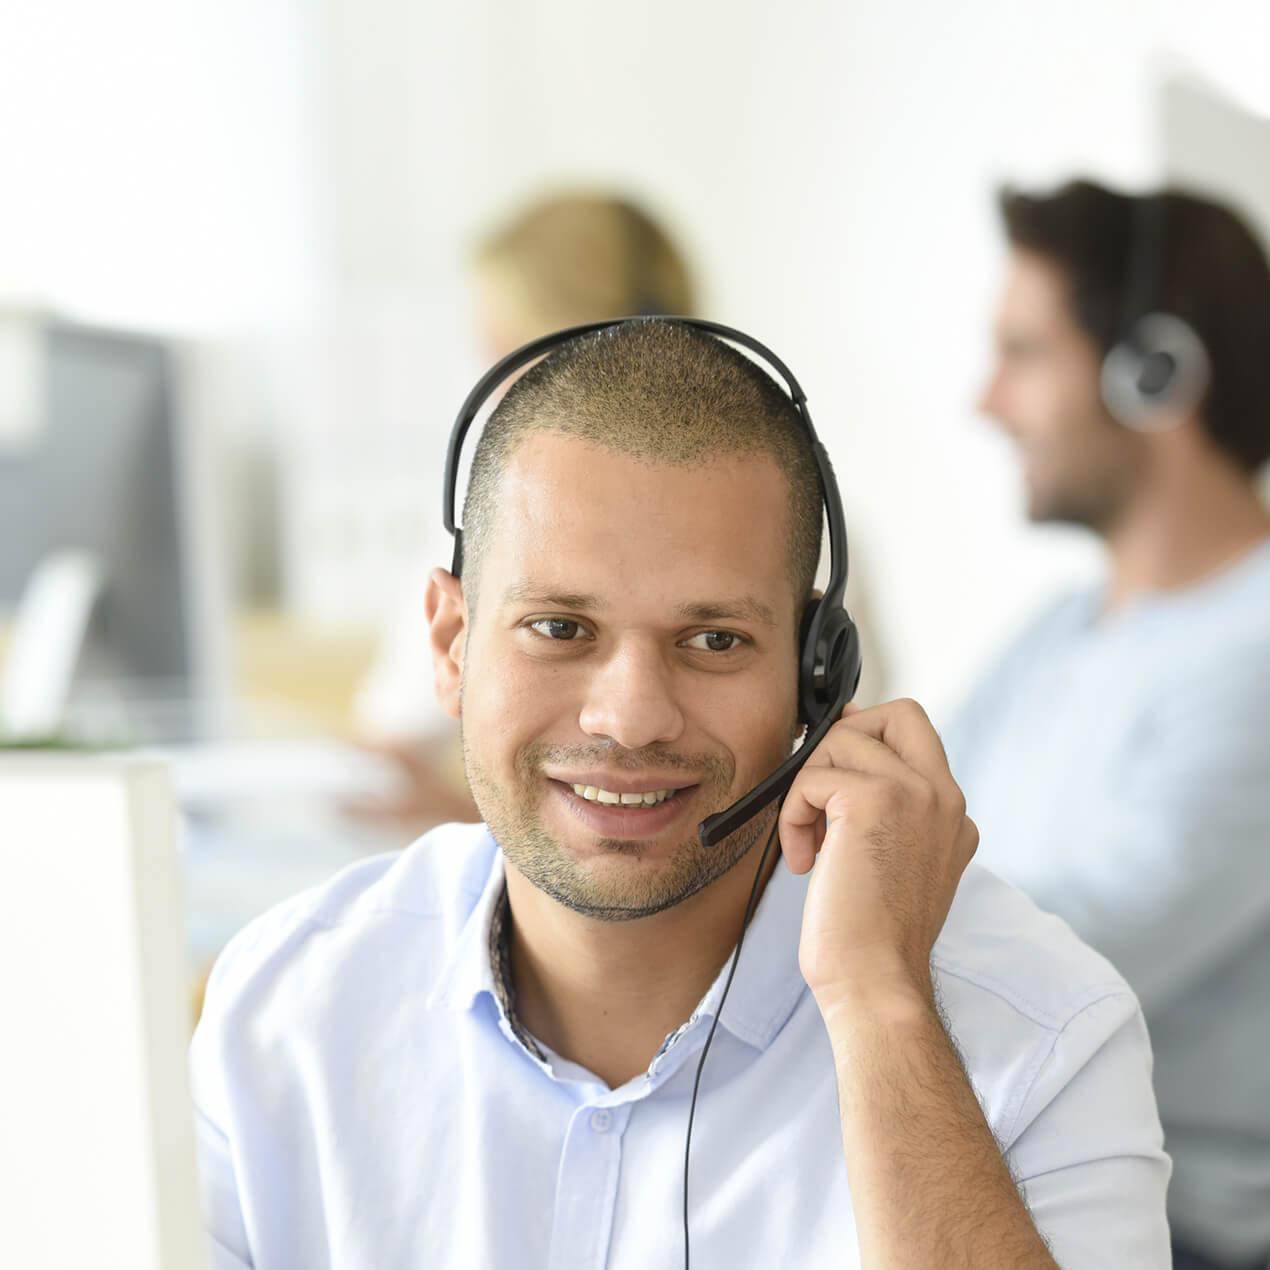 Male Working In Contact Center Wearing Headset